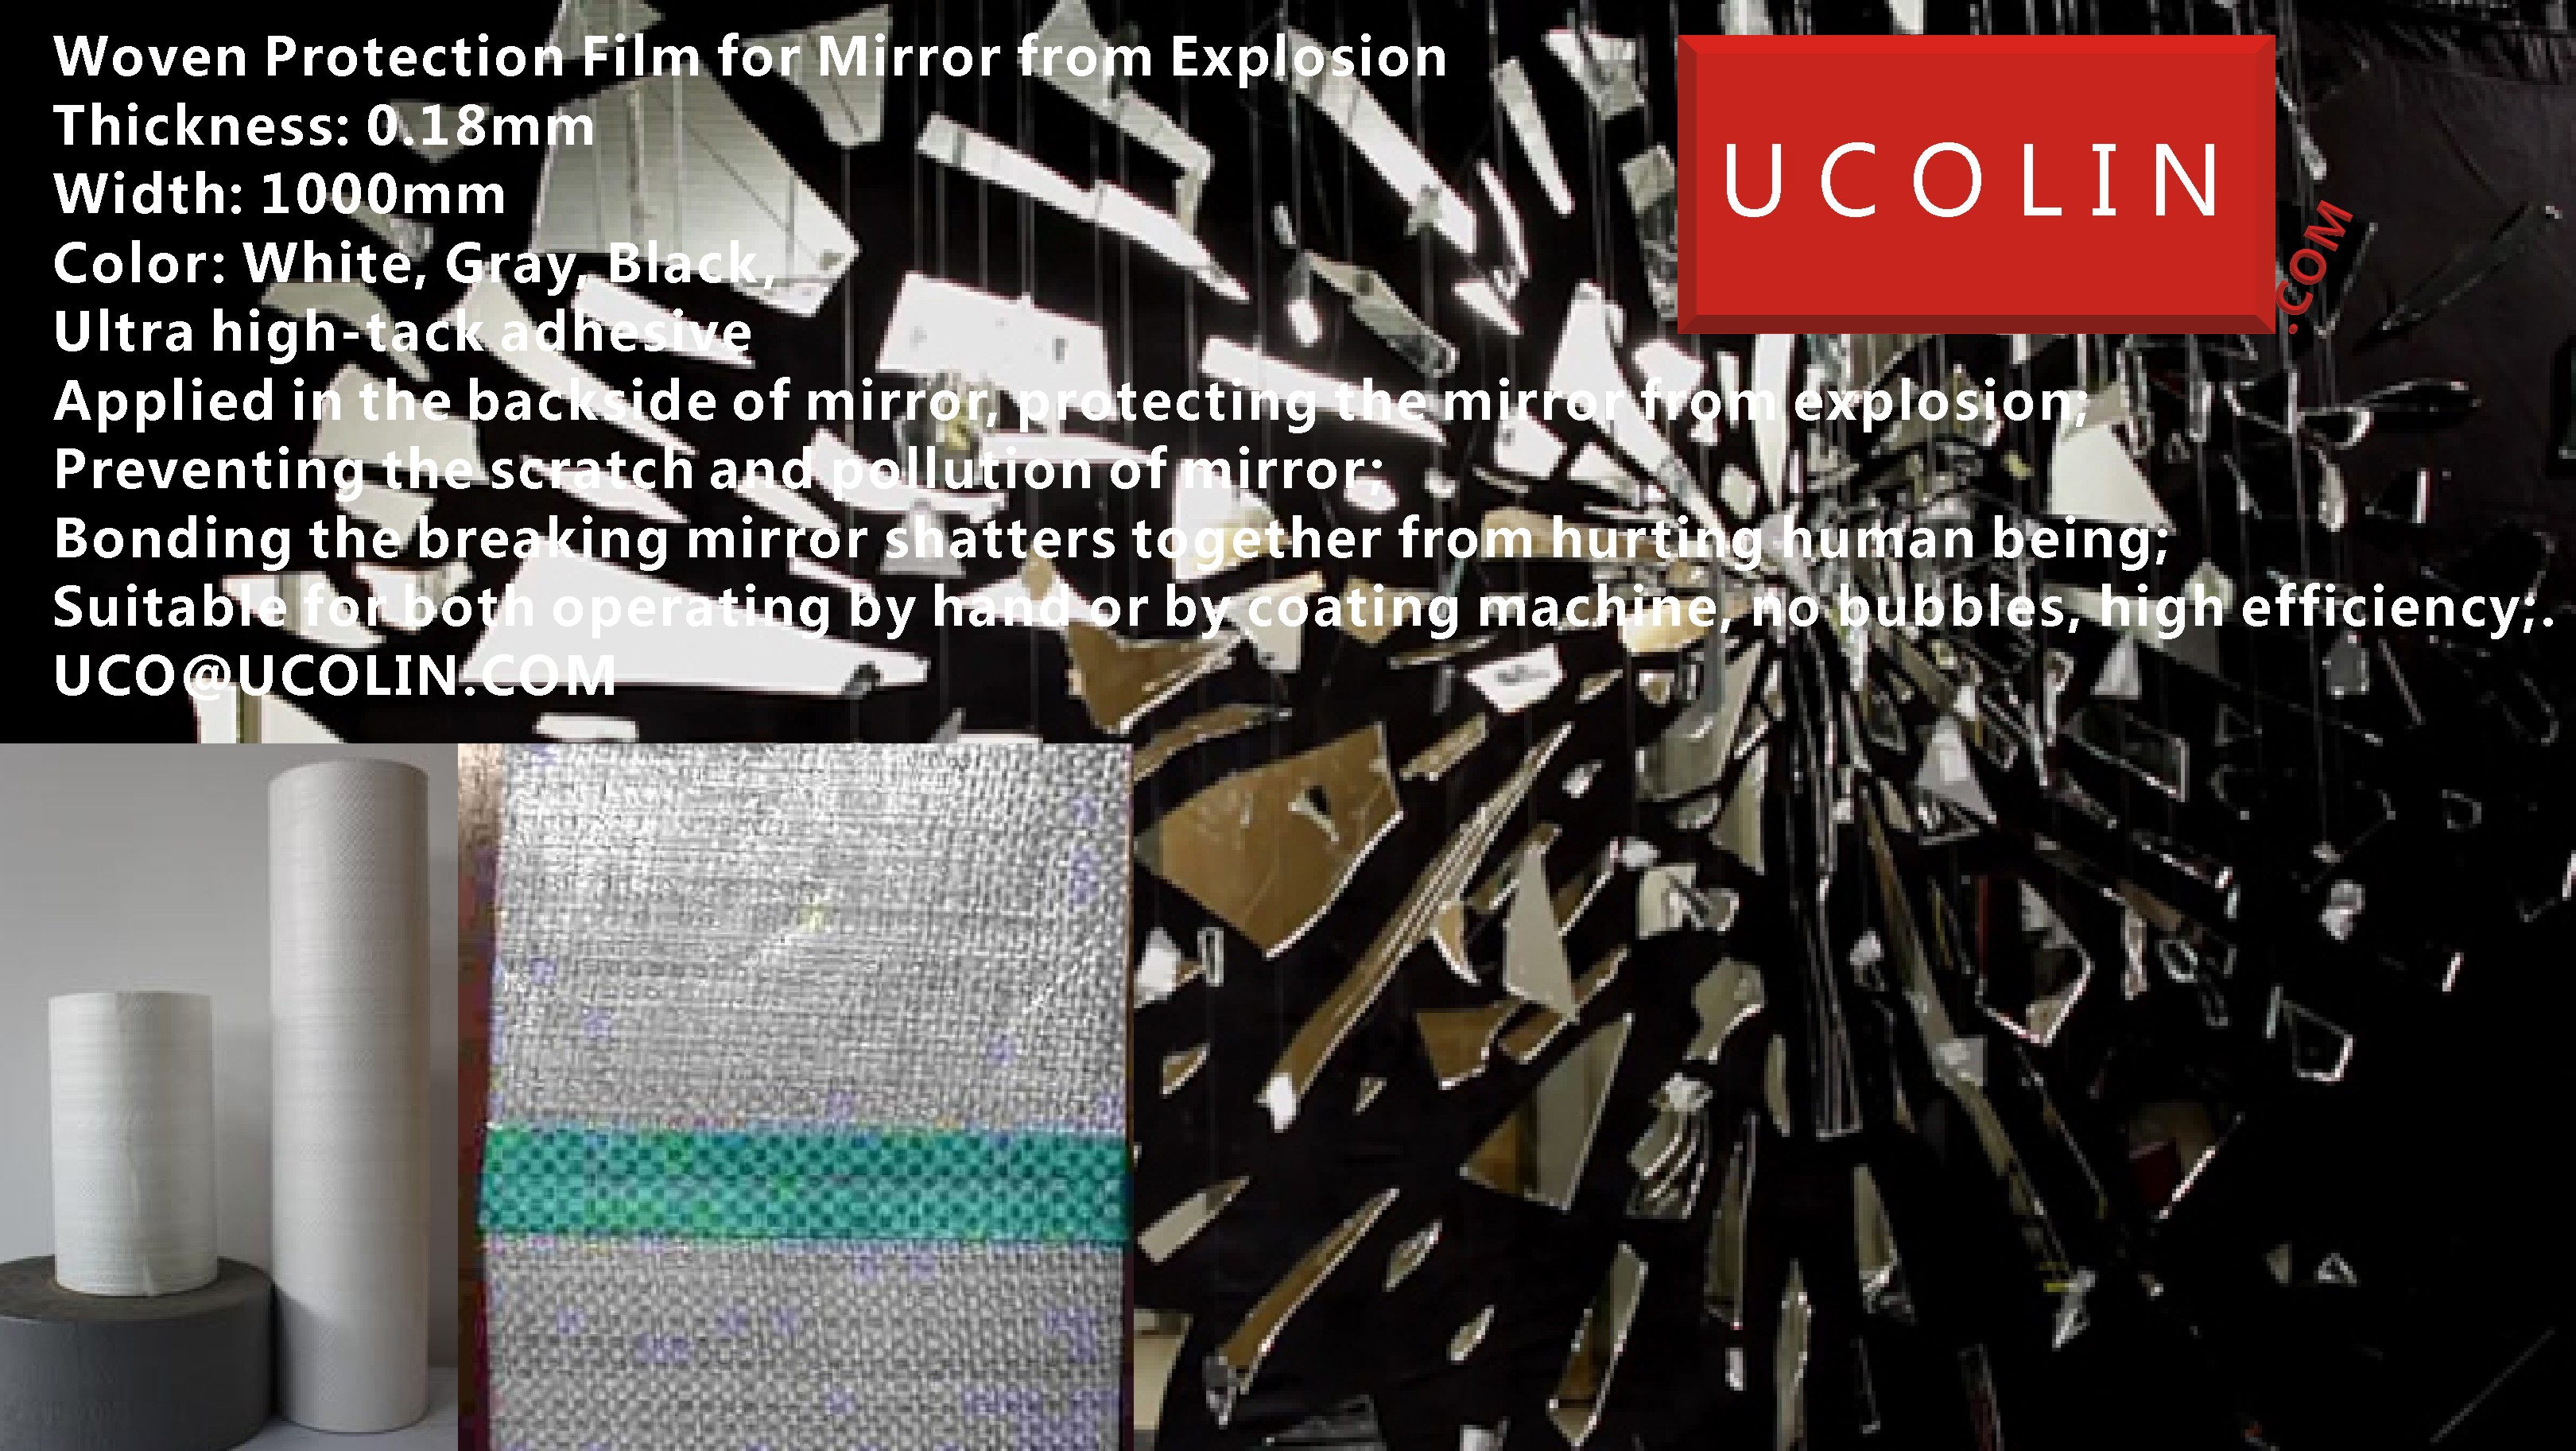 Woven Protection Film for Mirror from Explosion